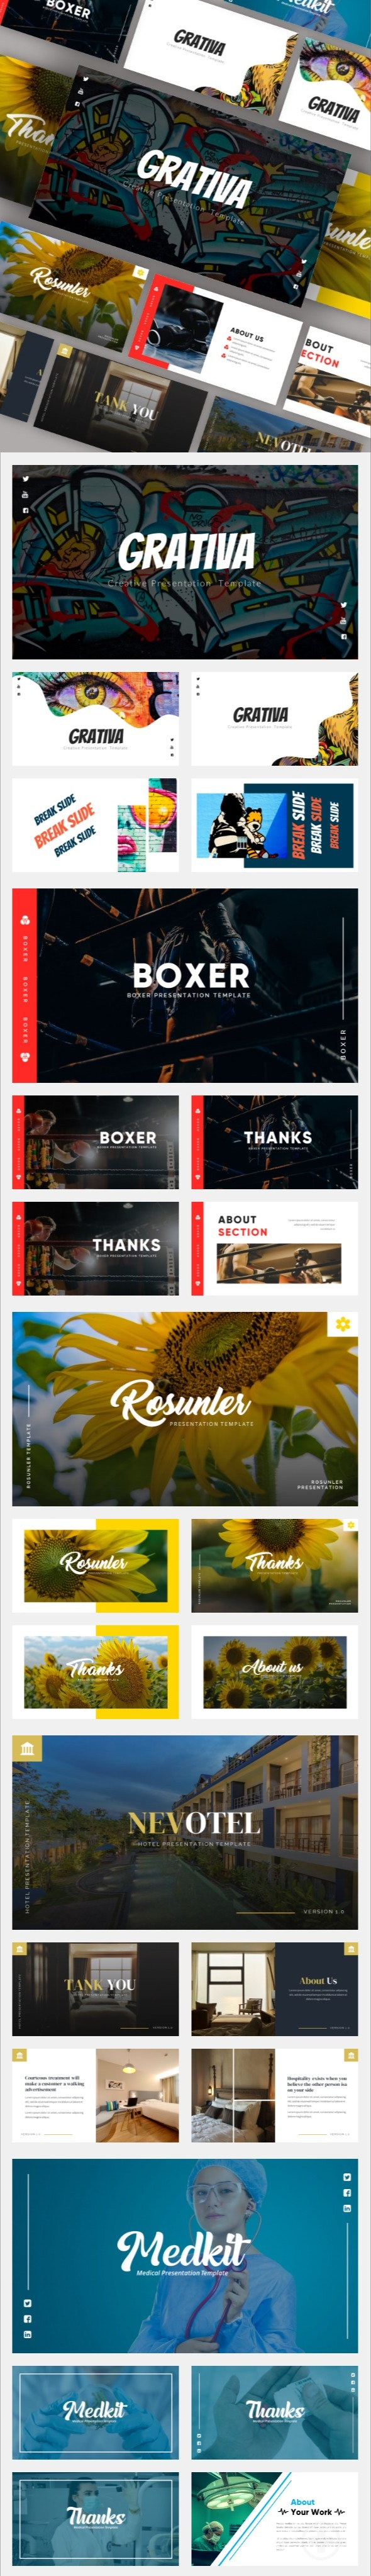 Multipurpose Powerpoint BIG Bundle Vol. 3 - Business PowerPoint Templates